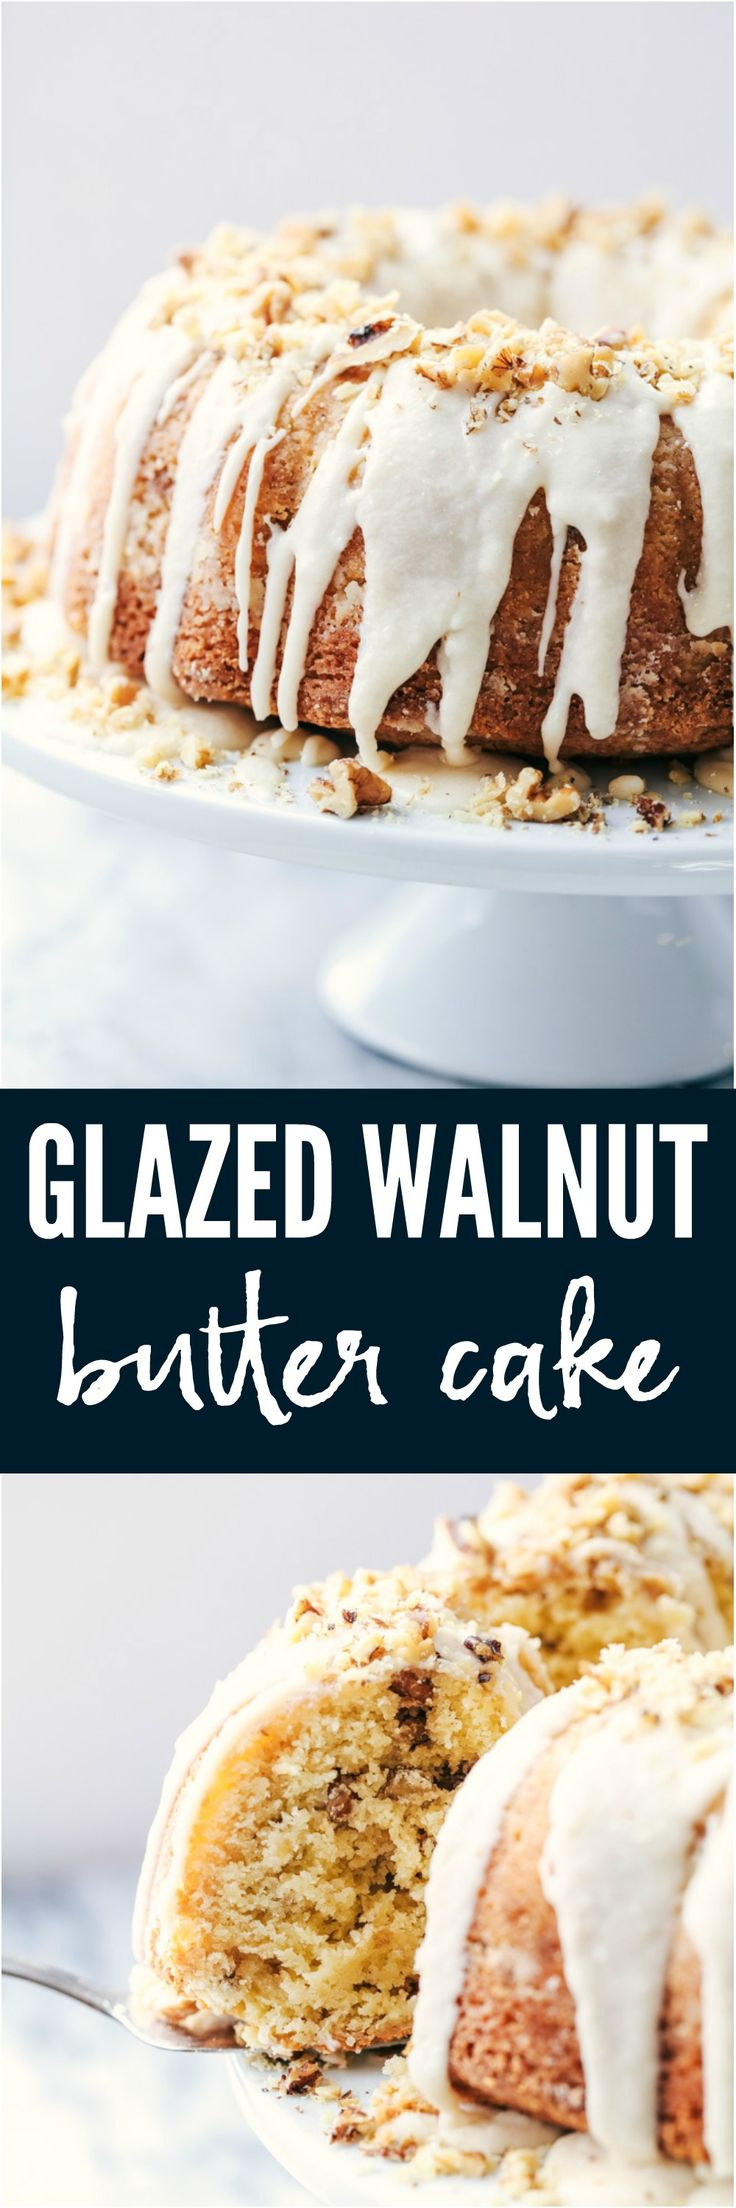 Glazed Walnut Butter Cake is a perfectly moist and tender buttery cake filled with walnuts and made with ingredients you already have on hand. This cake gets a delicious glaze and is topped with chopped walnuts and will become a new favorite!